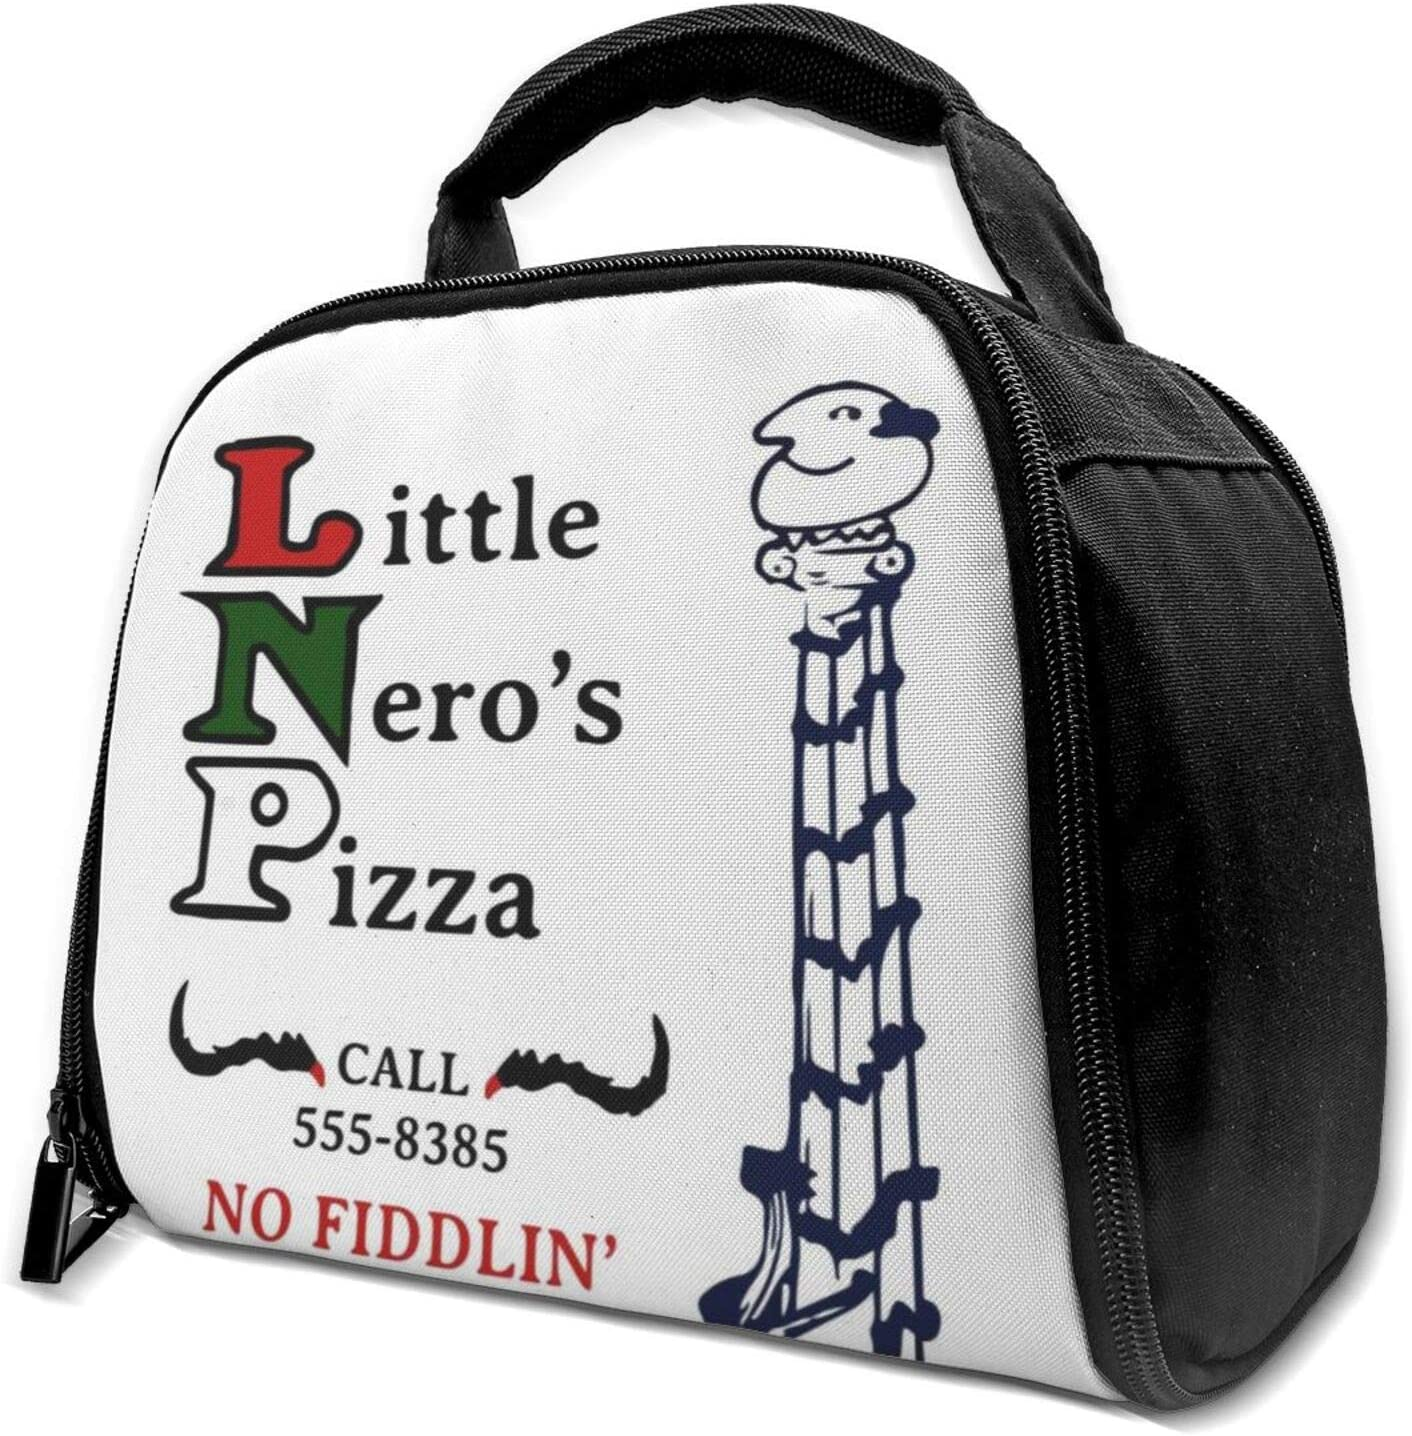 Little Neros Pizza Home Alone Reusable Insulation Bags Picnic Lunch Box For Adult And Kids, Lunch Cooler For Office Work